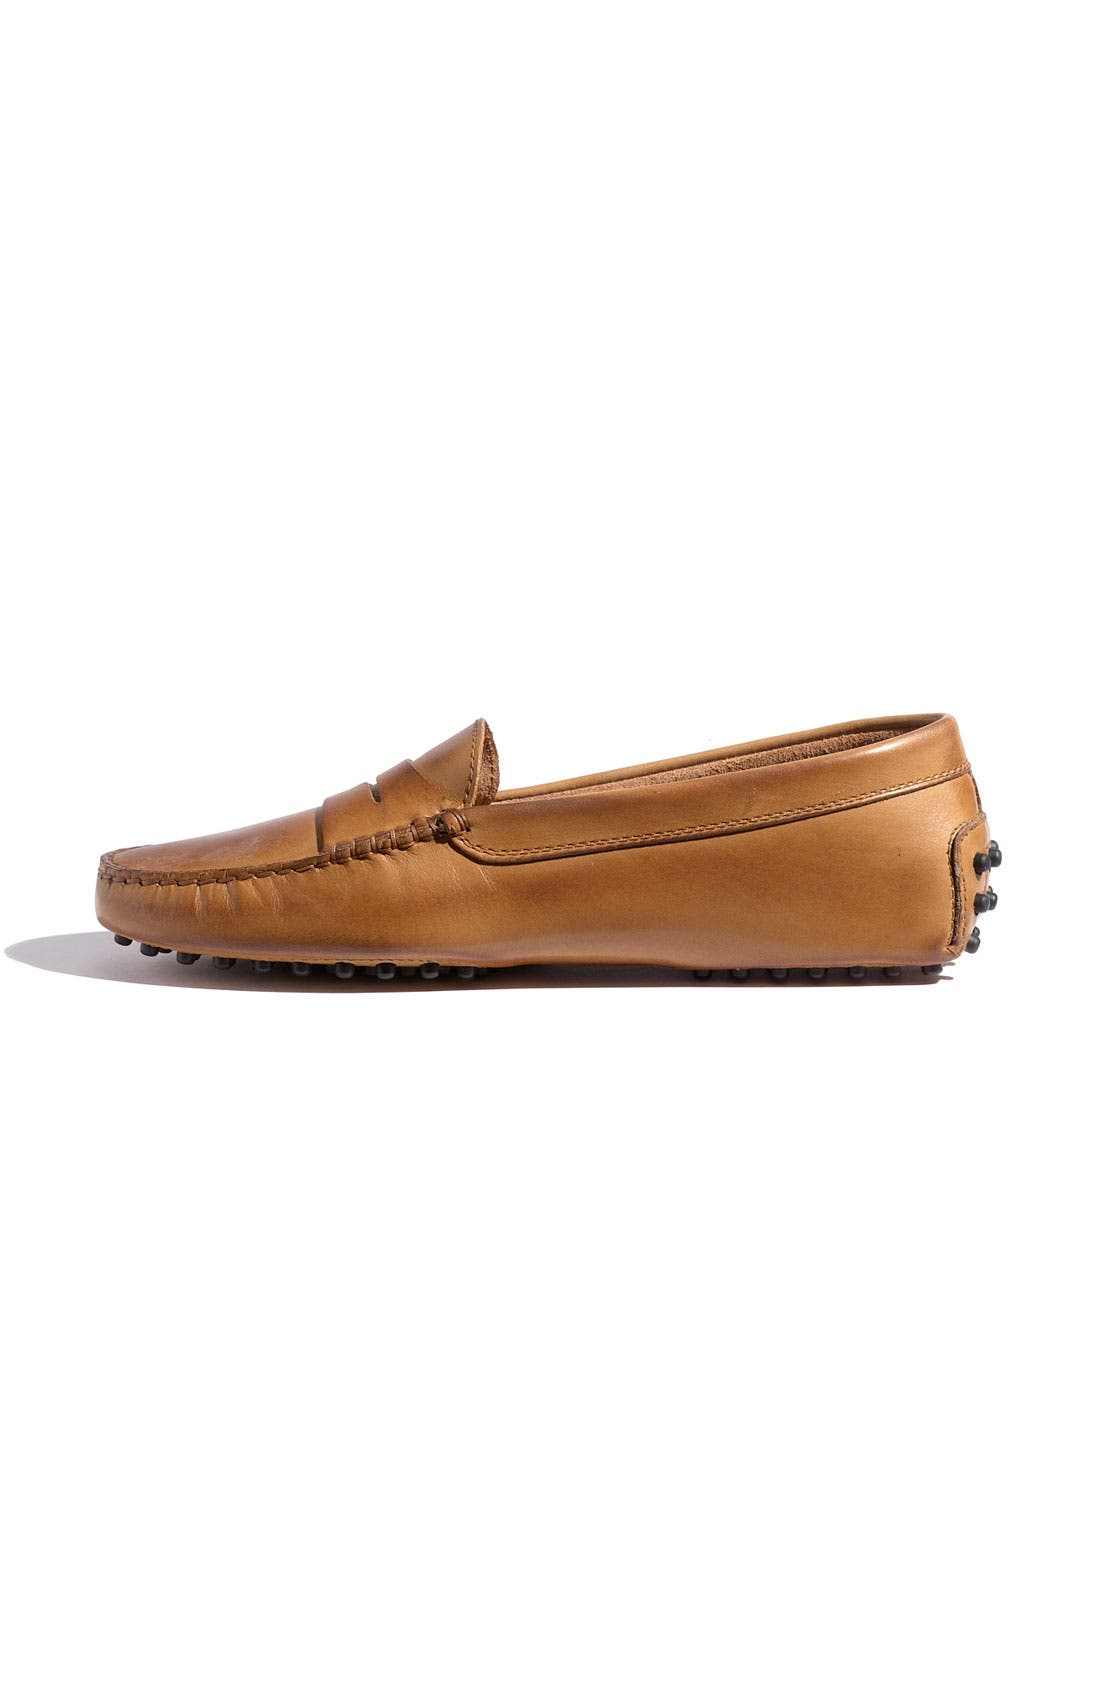 TOD'S,                             'Gommini' Driving Moccasin,                             Alternate thumbnail 2, color,                             BROWN